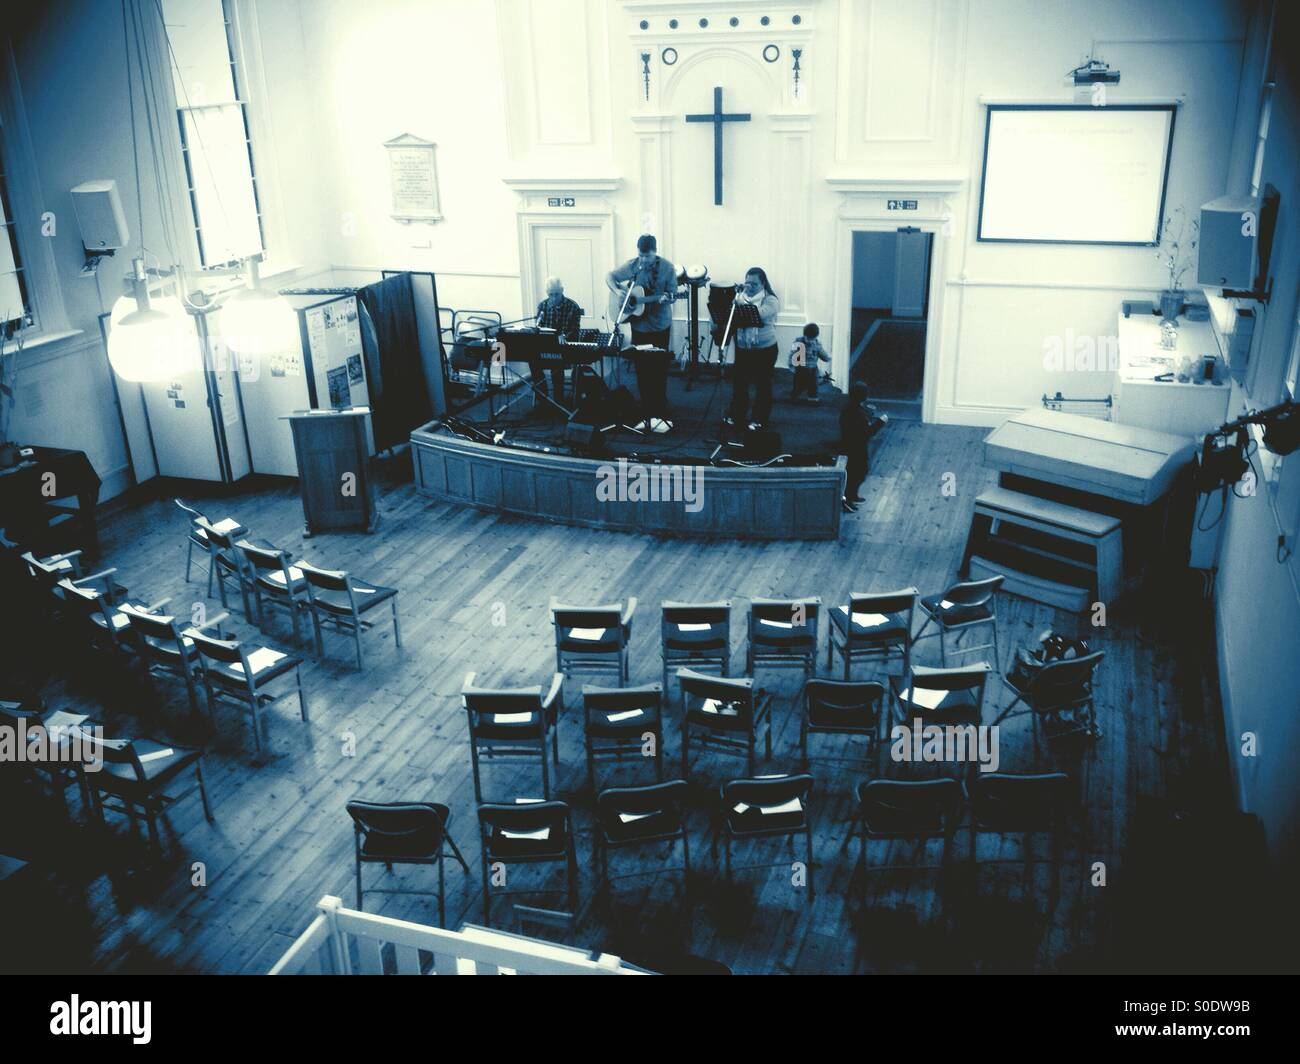 Church praise and worship band rehearsal. - Stock Image